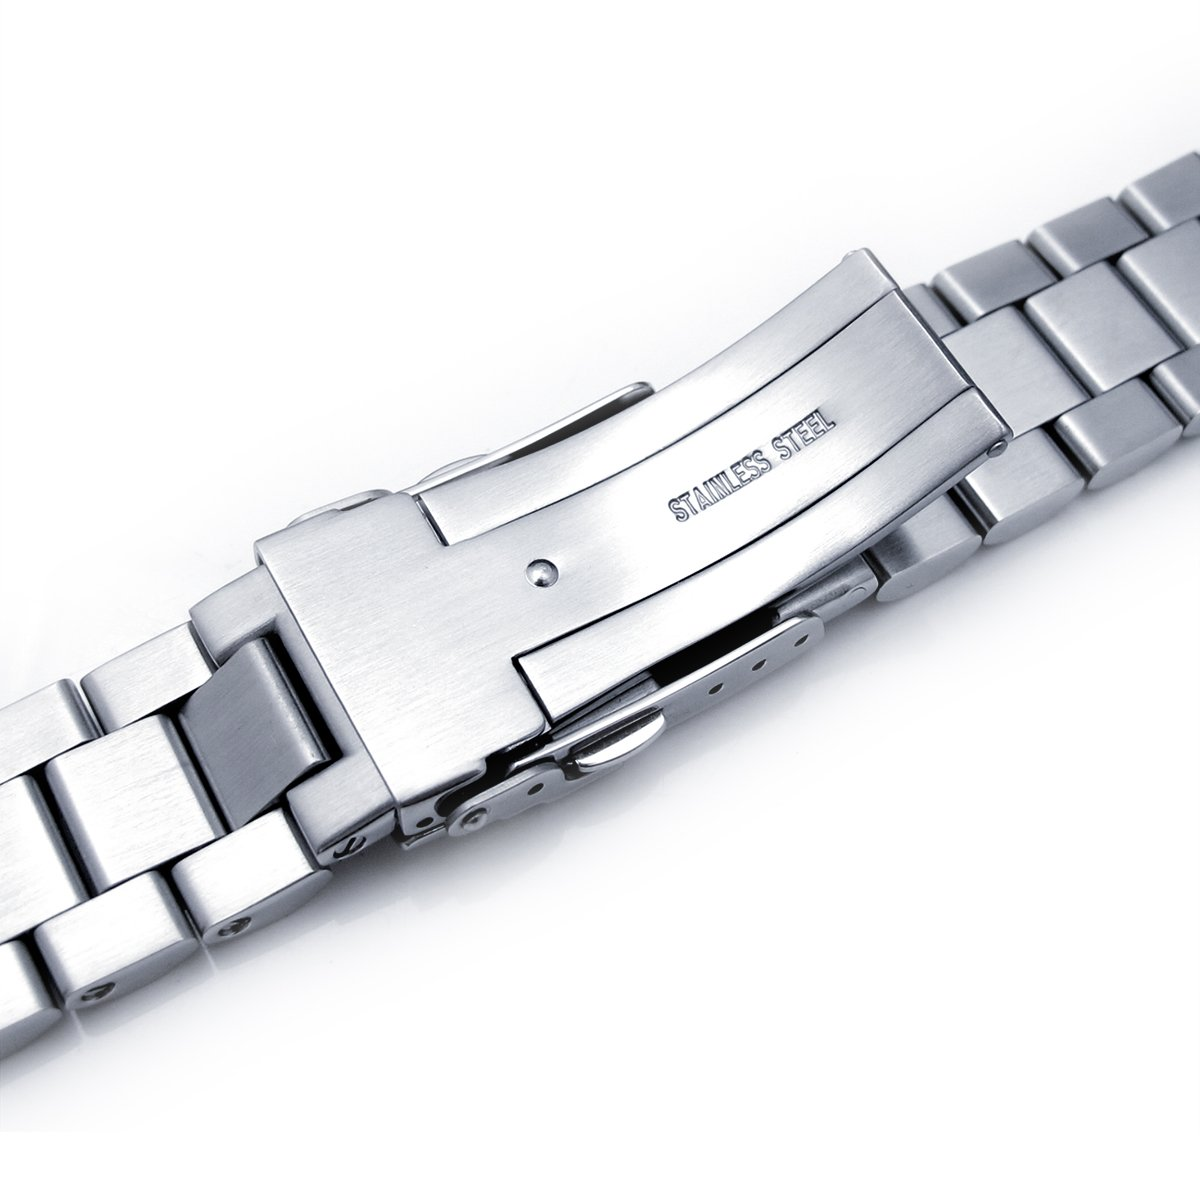 22mm Endmill watch band for SEIKO Diver SKX007, Brushed Solid Stainless Steel by Seiko Replacement by MiLTAT